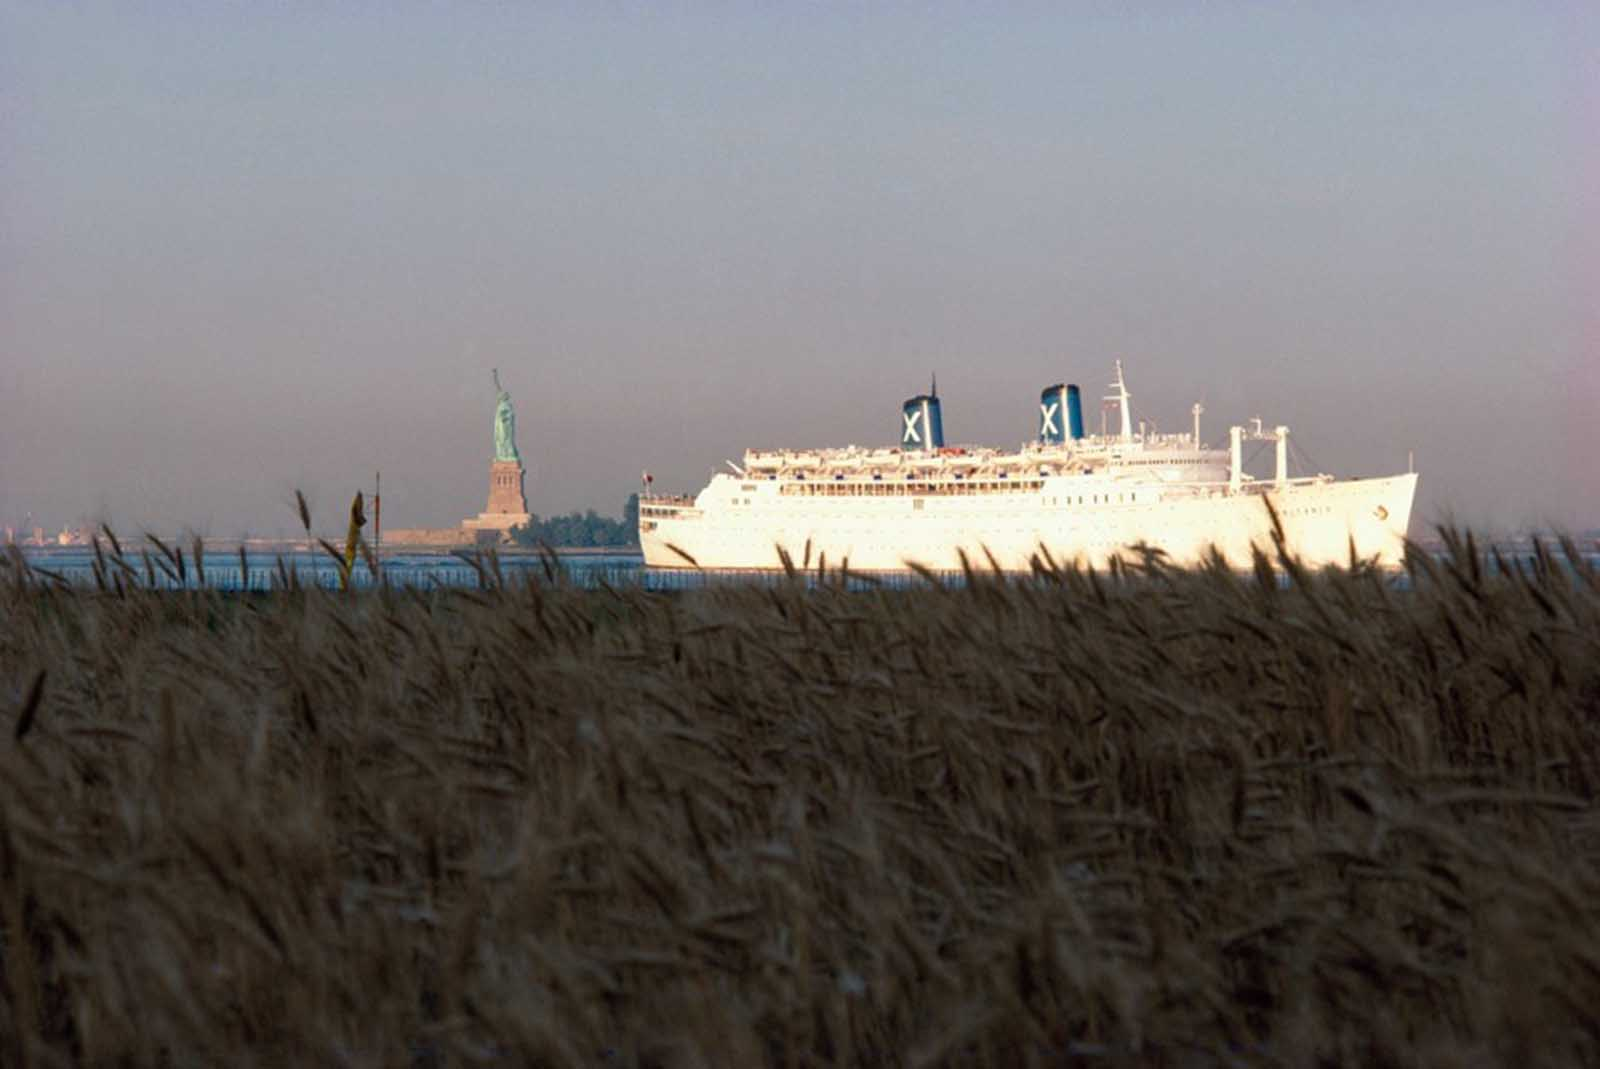 Ocean liner passing the Wheatfield on the Hudson.